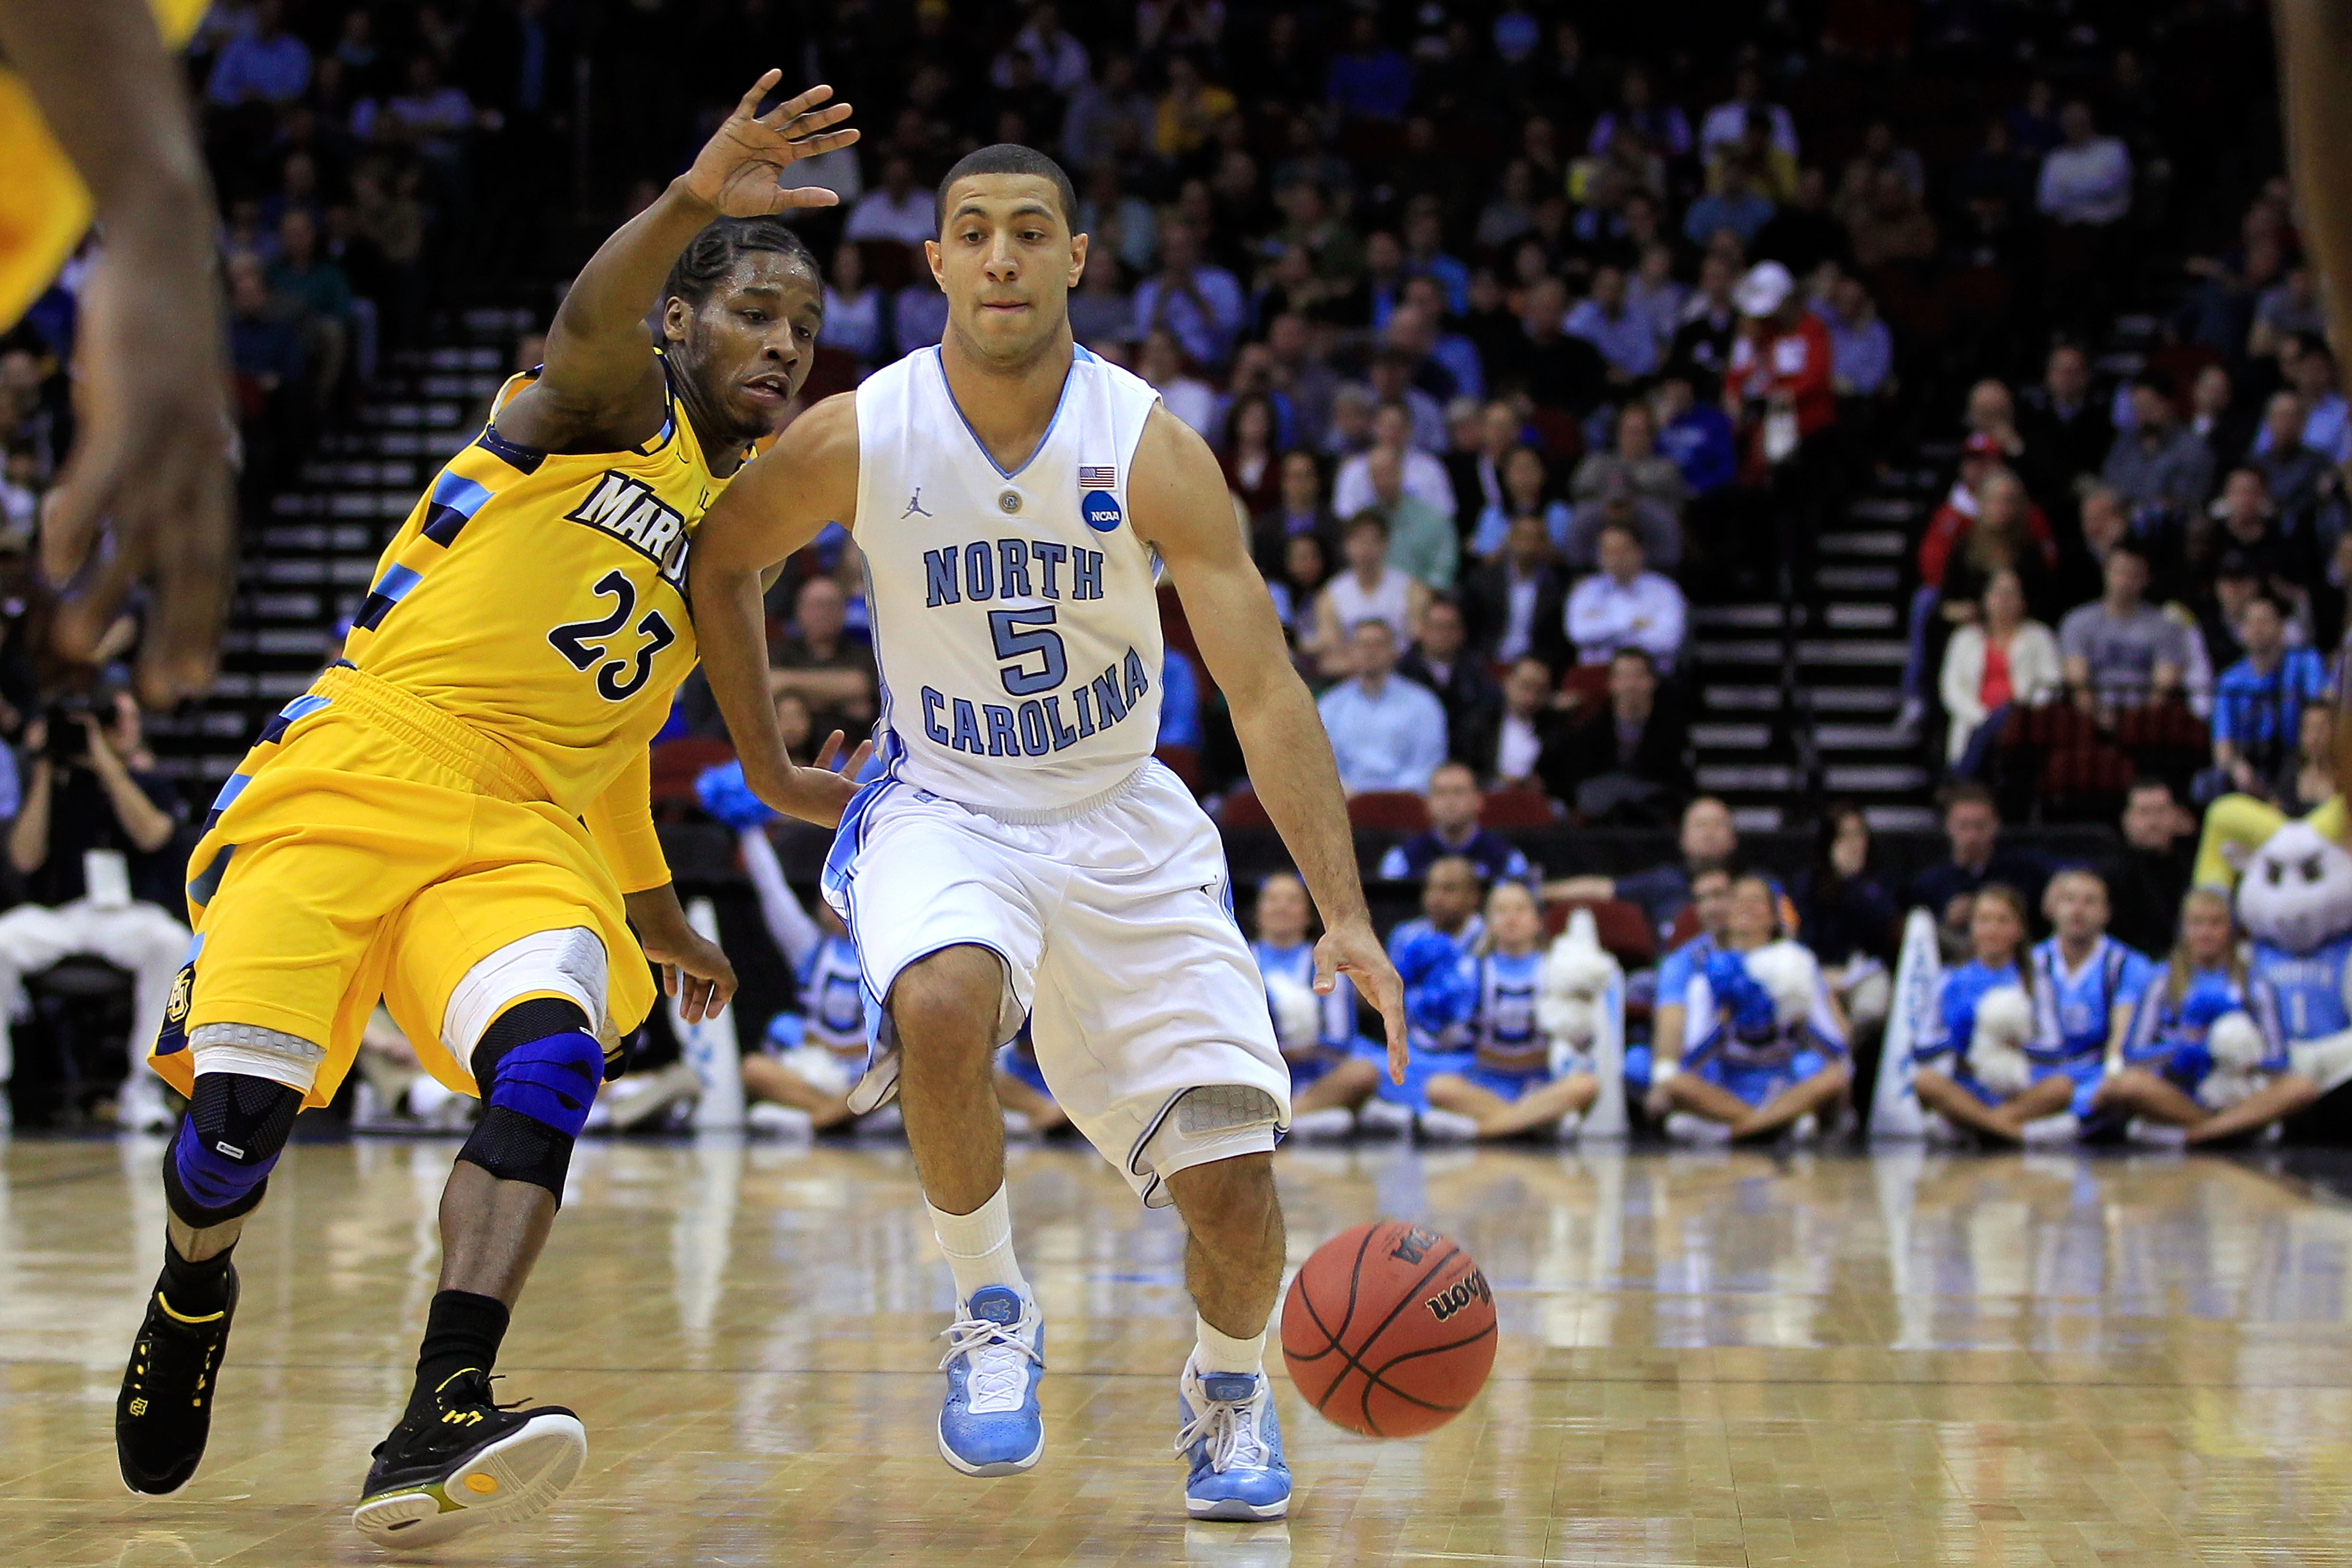 NEWARK, NJ - MARCH 25:  Kendall Marshall #5 of the North Carolina Tar Heels dribbles the ball against Junior Cadougan #5 of the Marquette Golden Eagles during the east regional semifinal of the 2011 NCAA Men's Basketball Tournament at the Prudential Cente